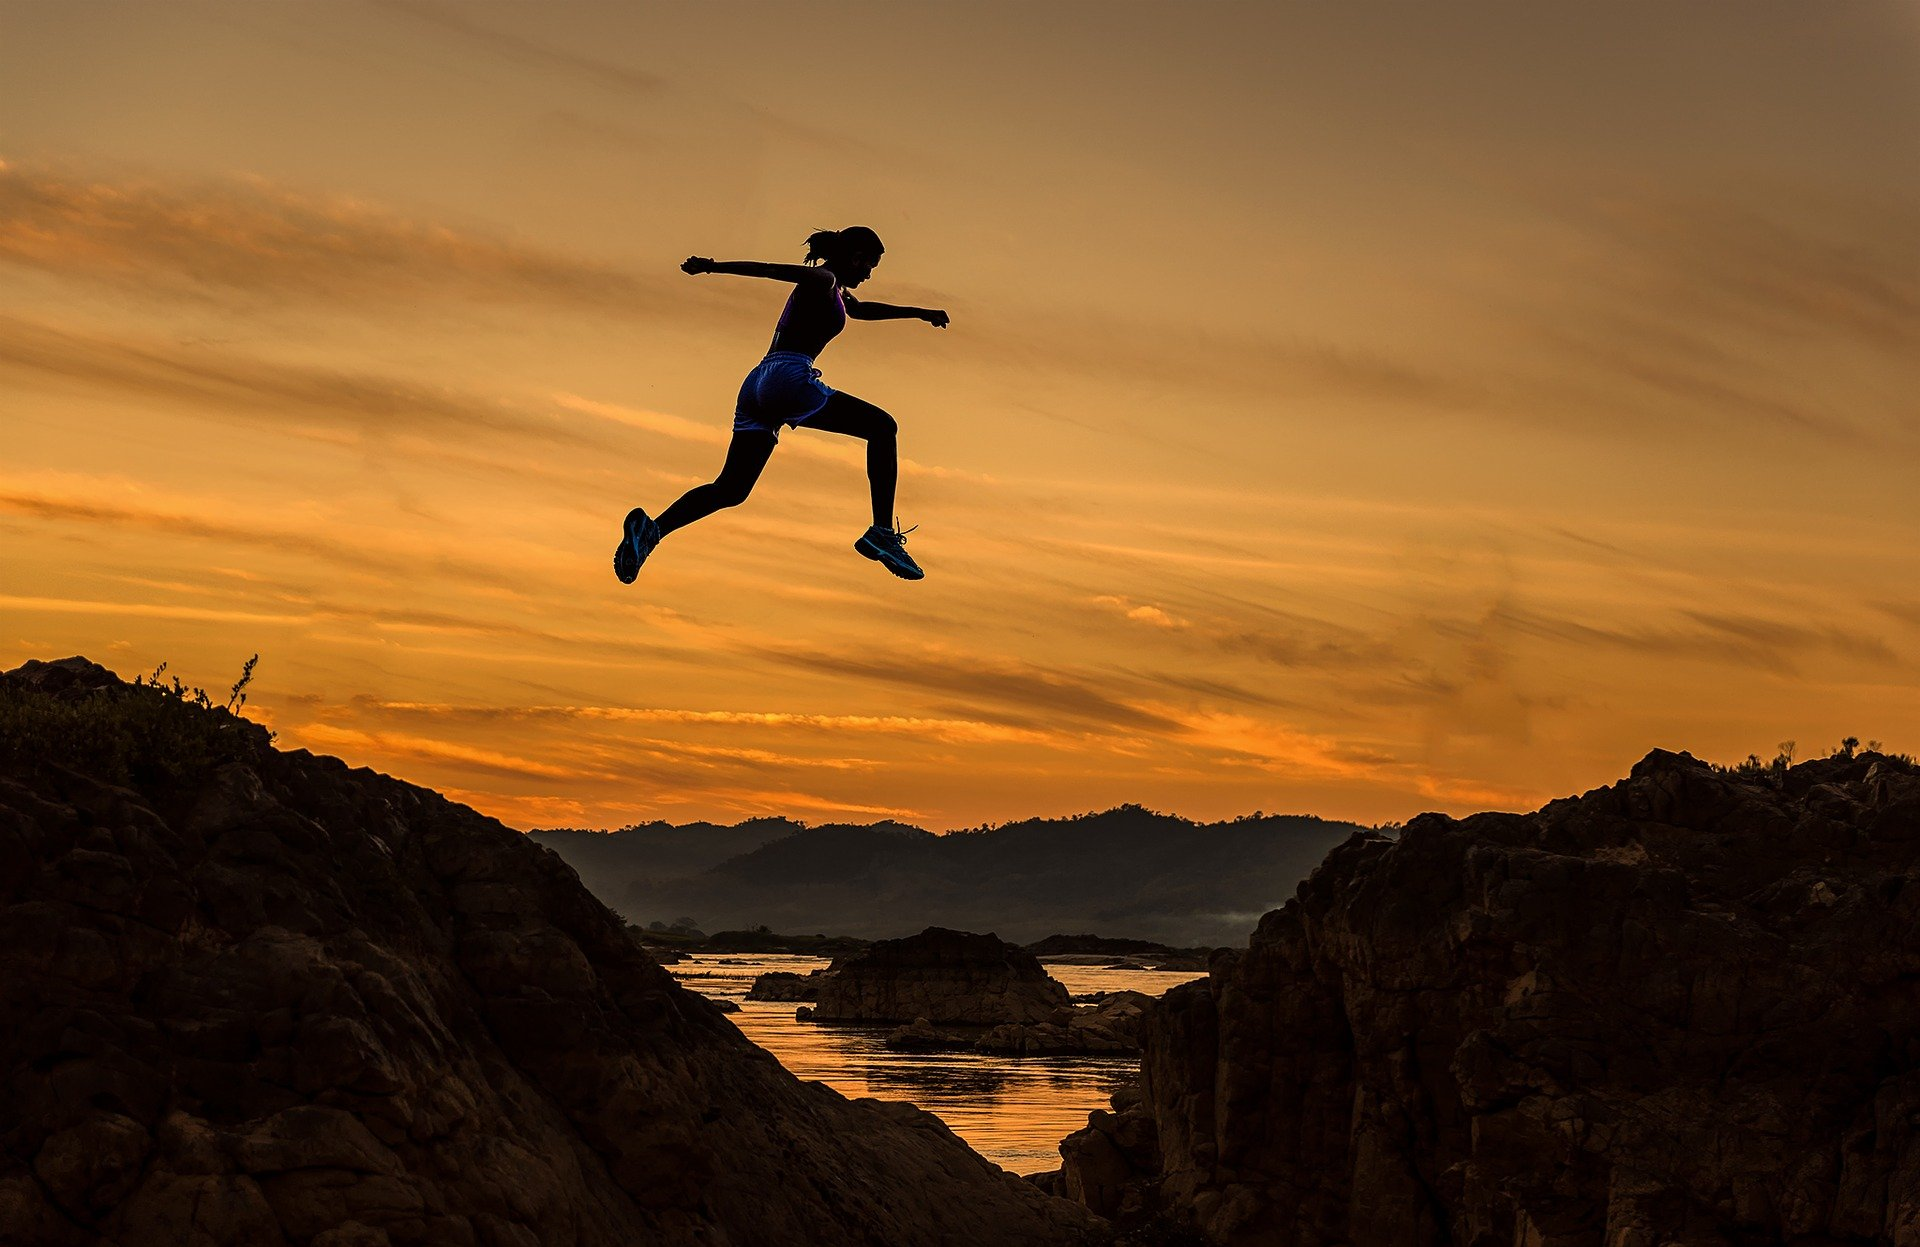 woman sprinting at a great height over a creak